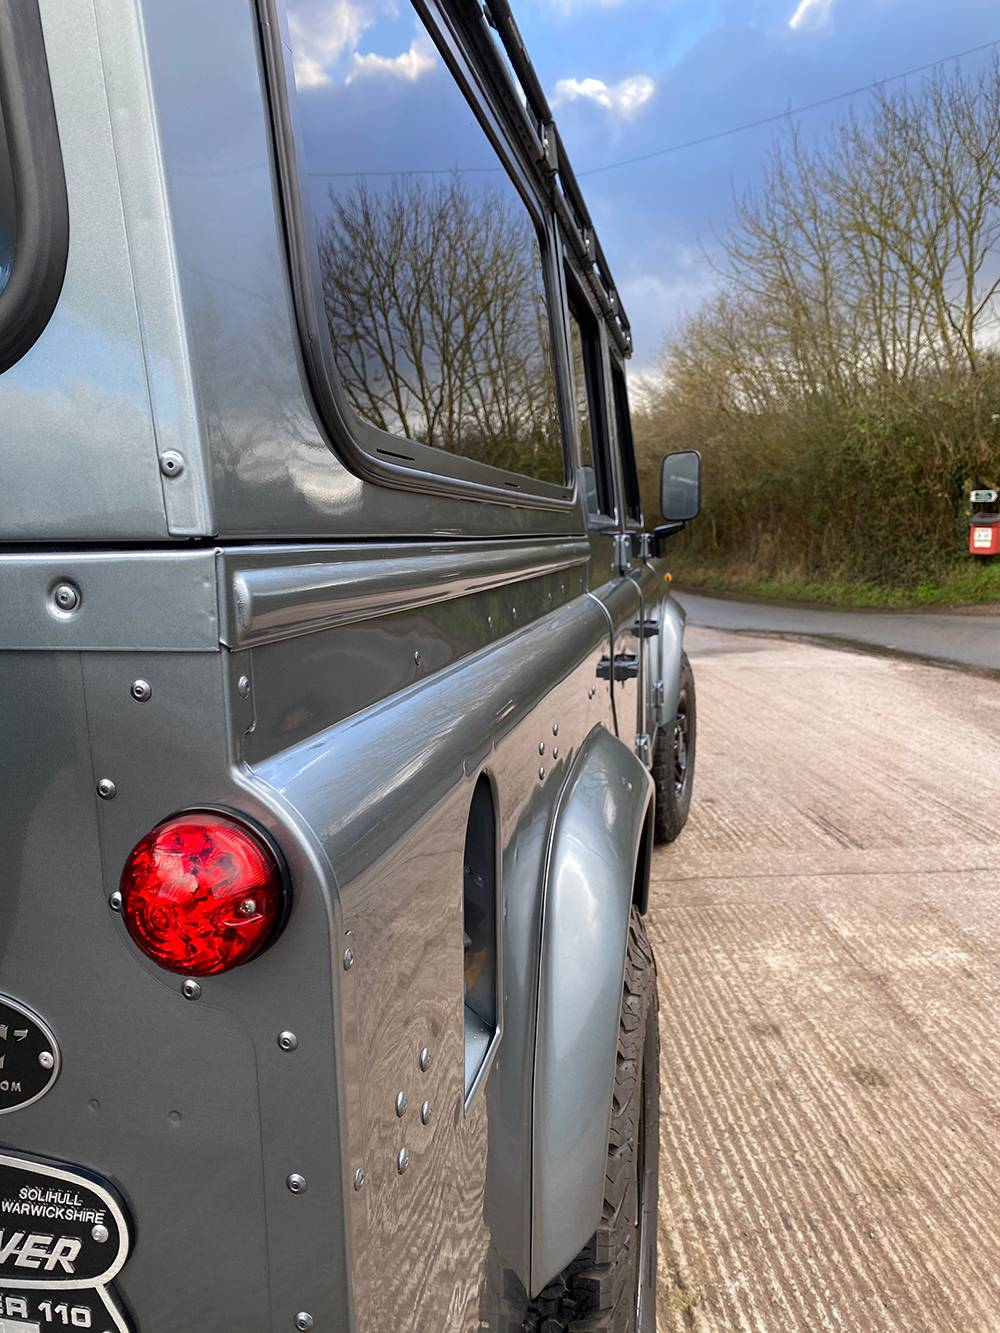 Land Rover D110 Metallic Grey 8536